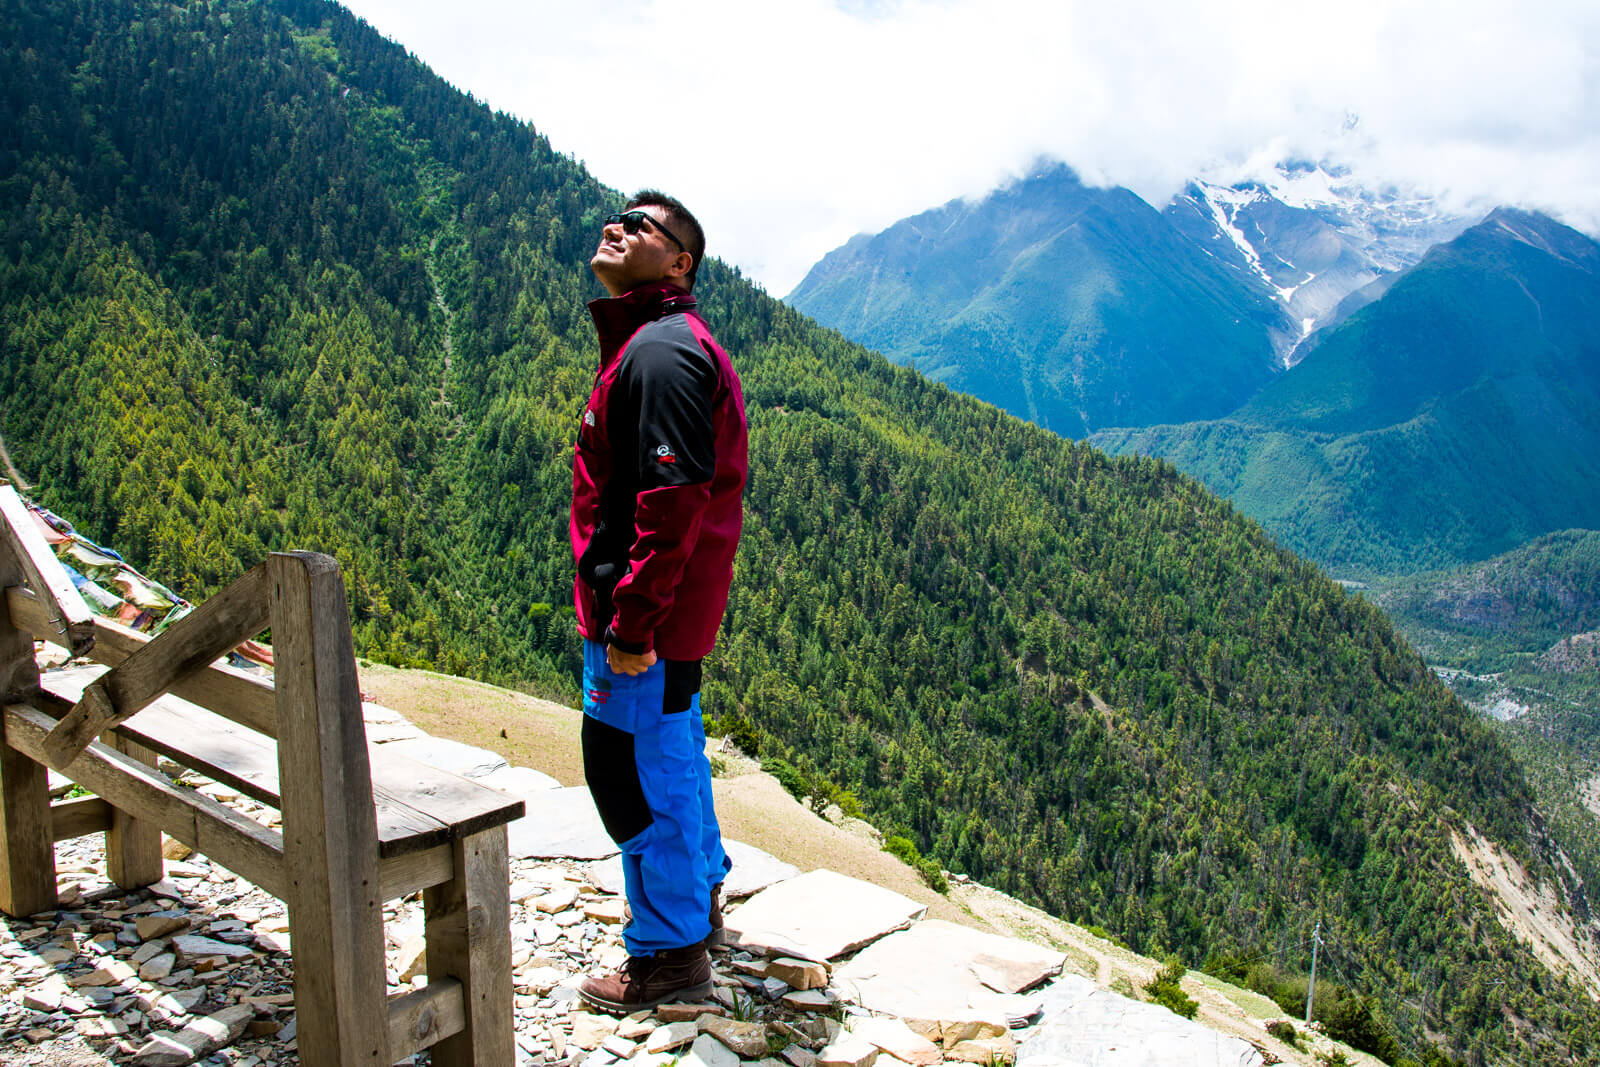 Taking a much needed panoramic trekking break during the Annapurna Circuit Trek